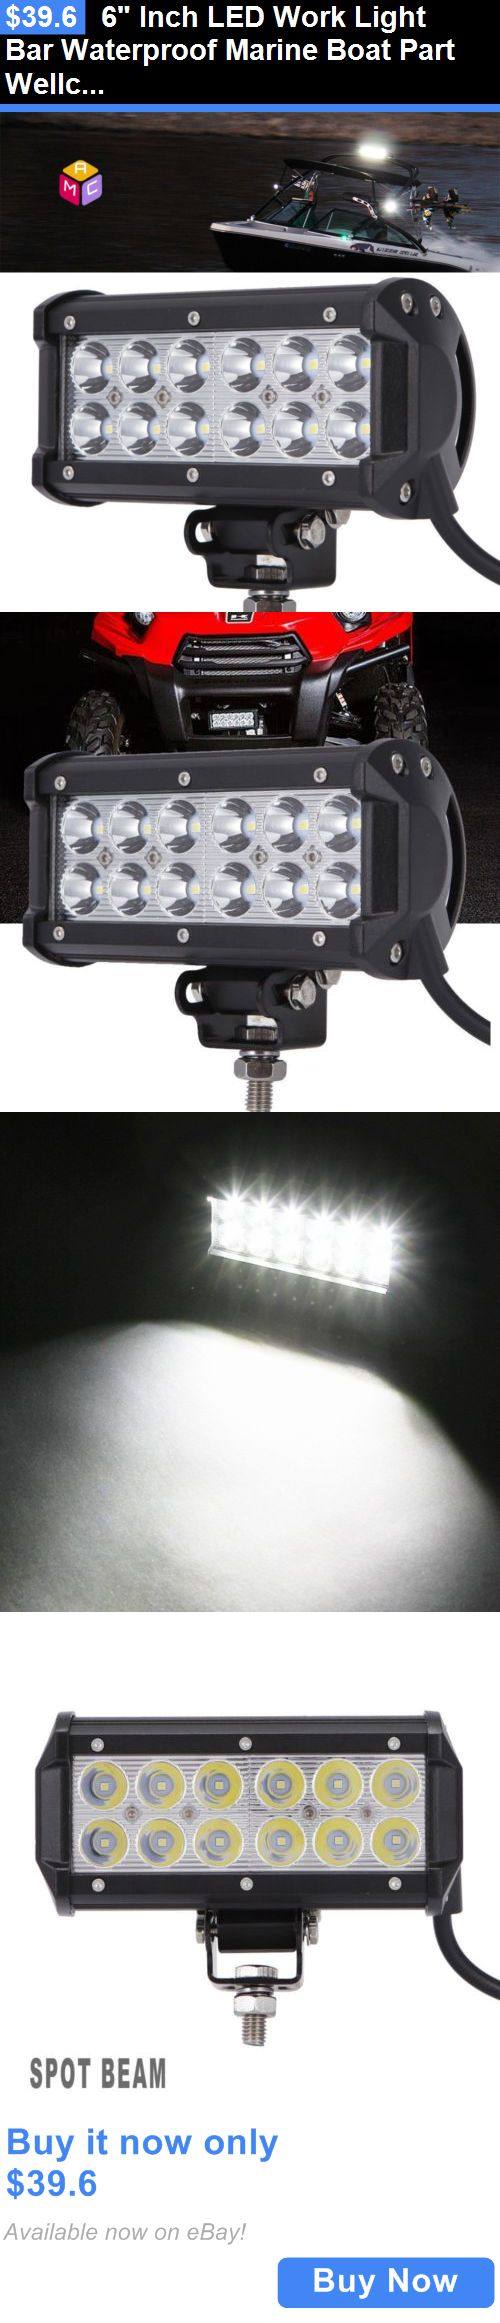 17 best images about boat mercury marine boat boat parts 6 inch led work light bar waterproof marine boat part wellcraft searay bayliner